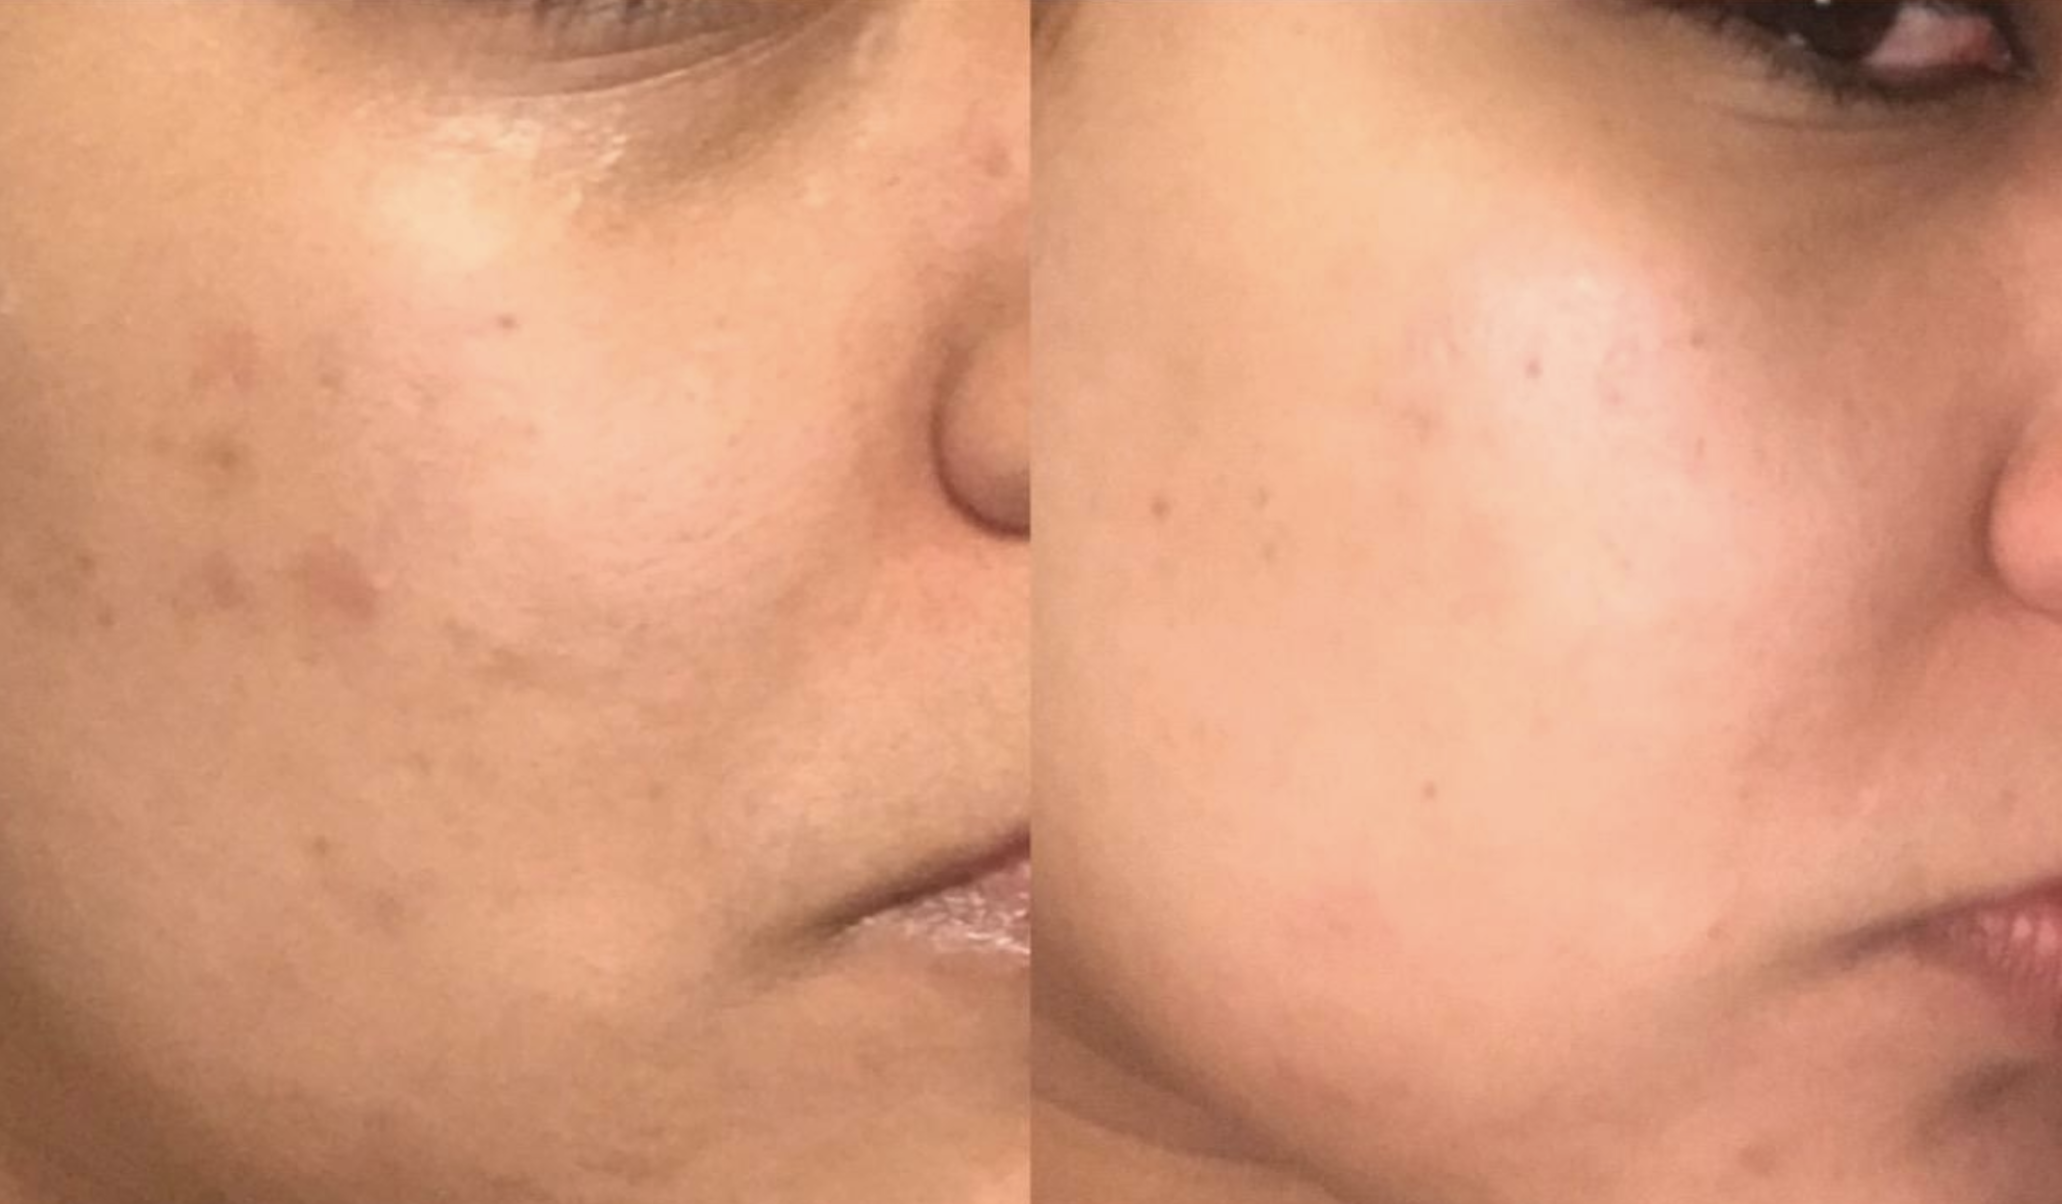 A split photo with a reviewer's face on the left showing dark spots and redness from a blemish and on the right, most of the spots are gone